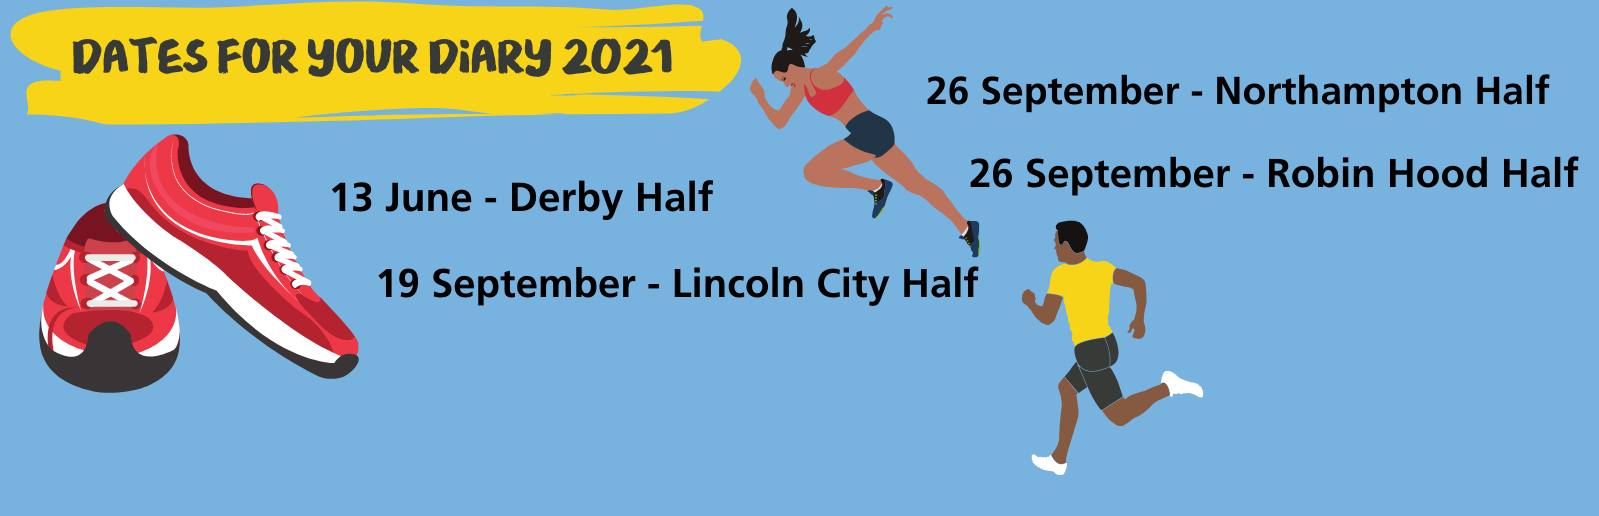 Running dates for your diary